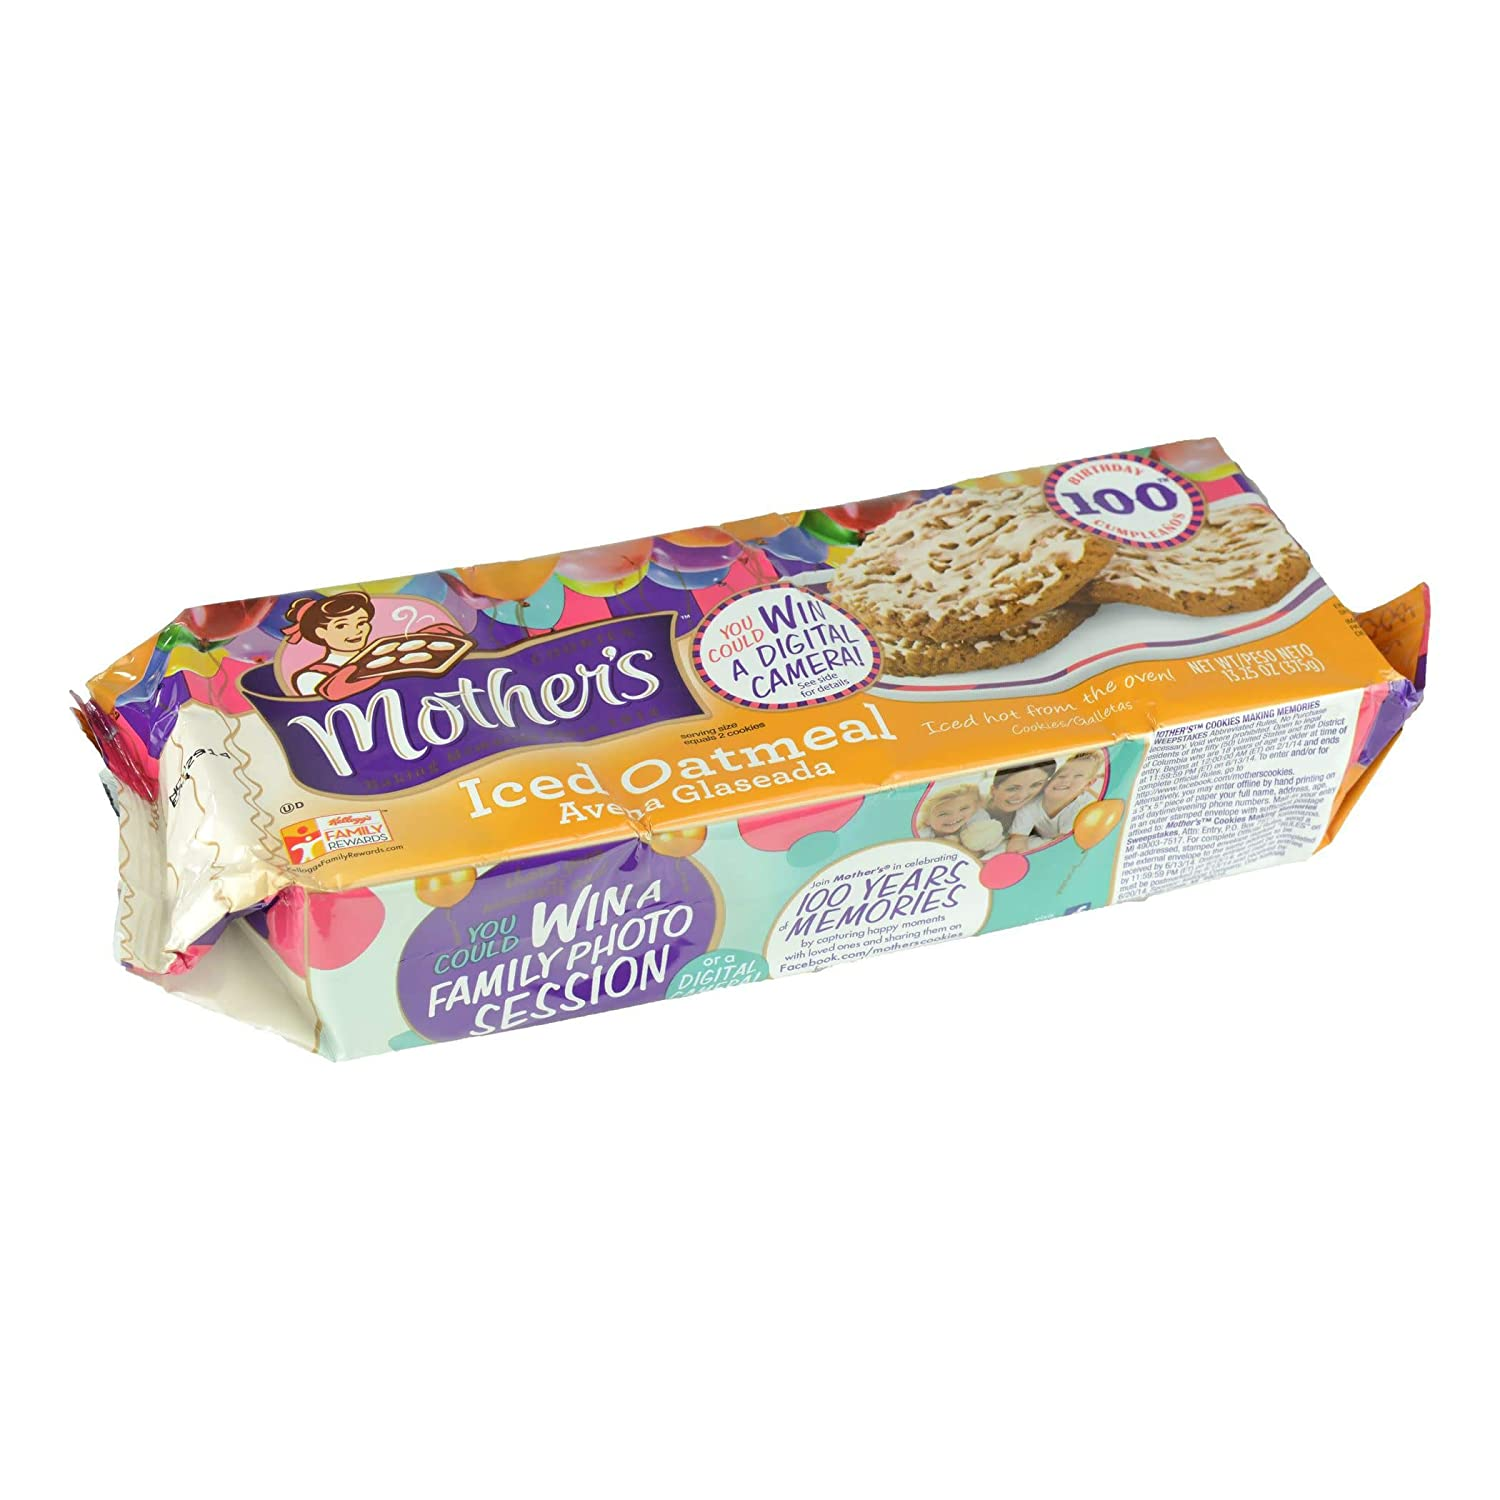 Mothers Iced Oatmeal Cookies, 13.25-Ounce Packages (Pack of 4)